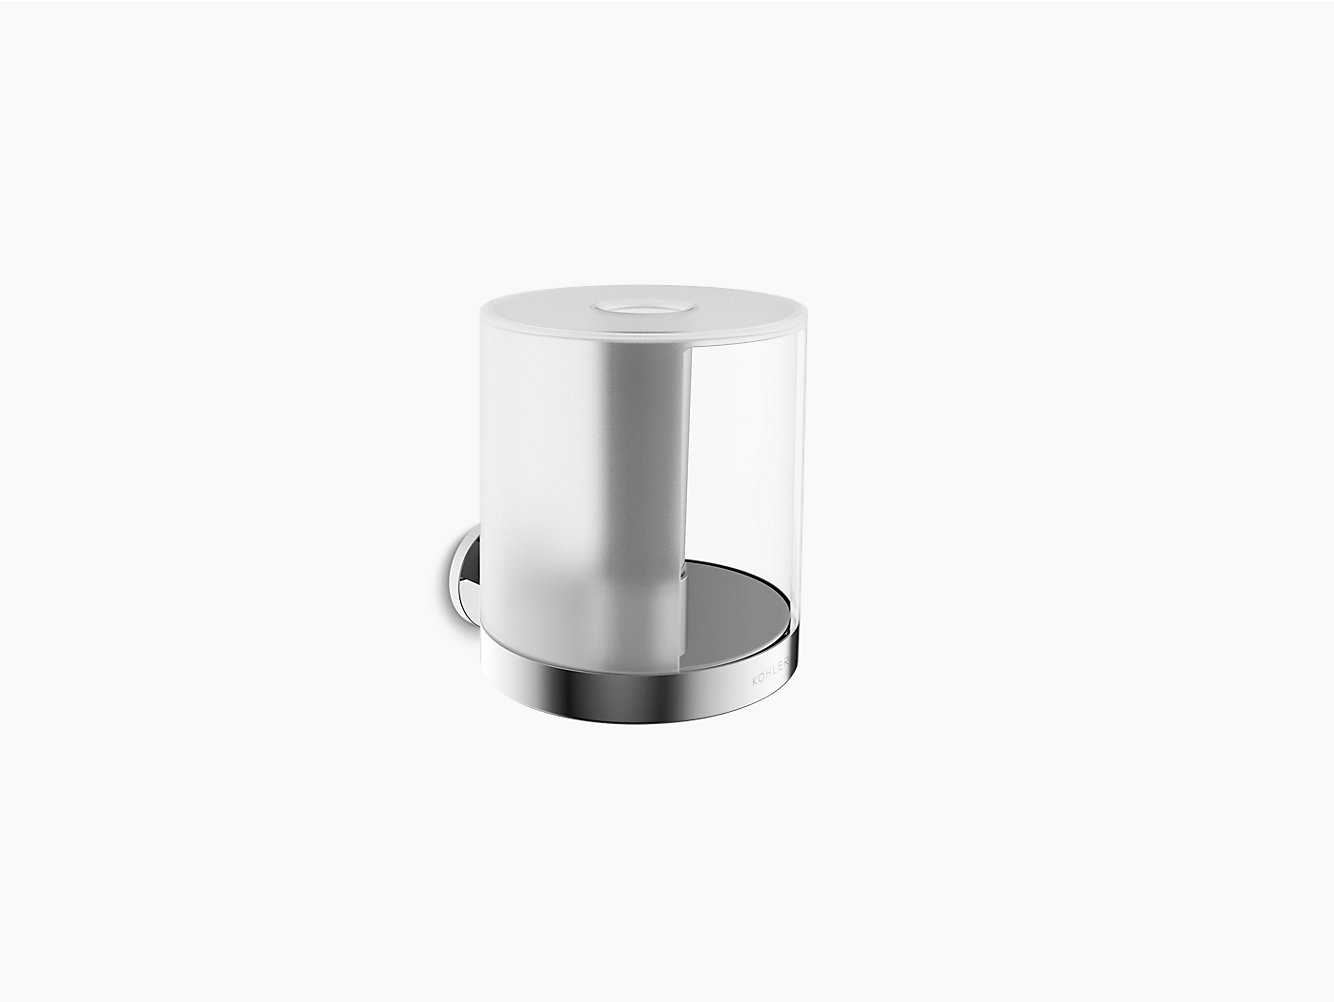 Toilet Paper Holder : Stillness toilet tissue holder 14388t kohler